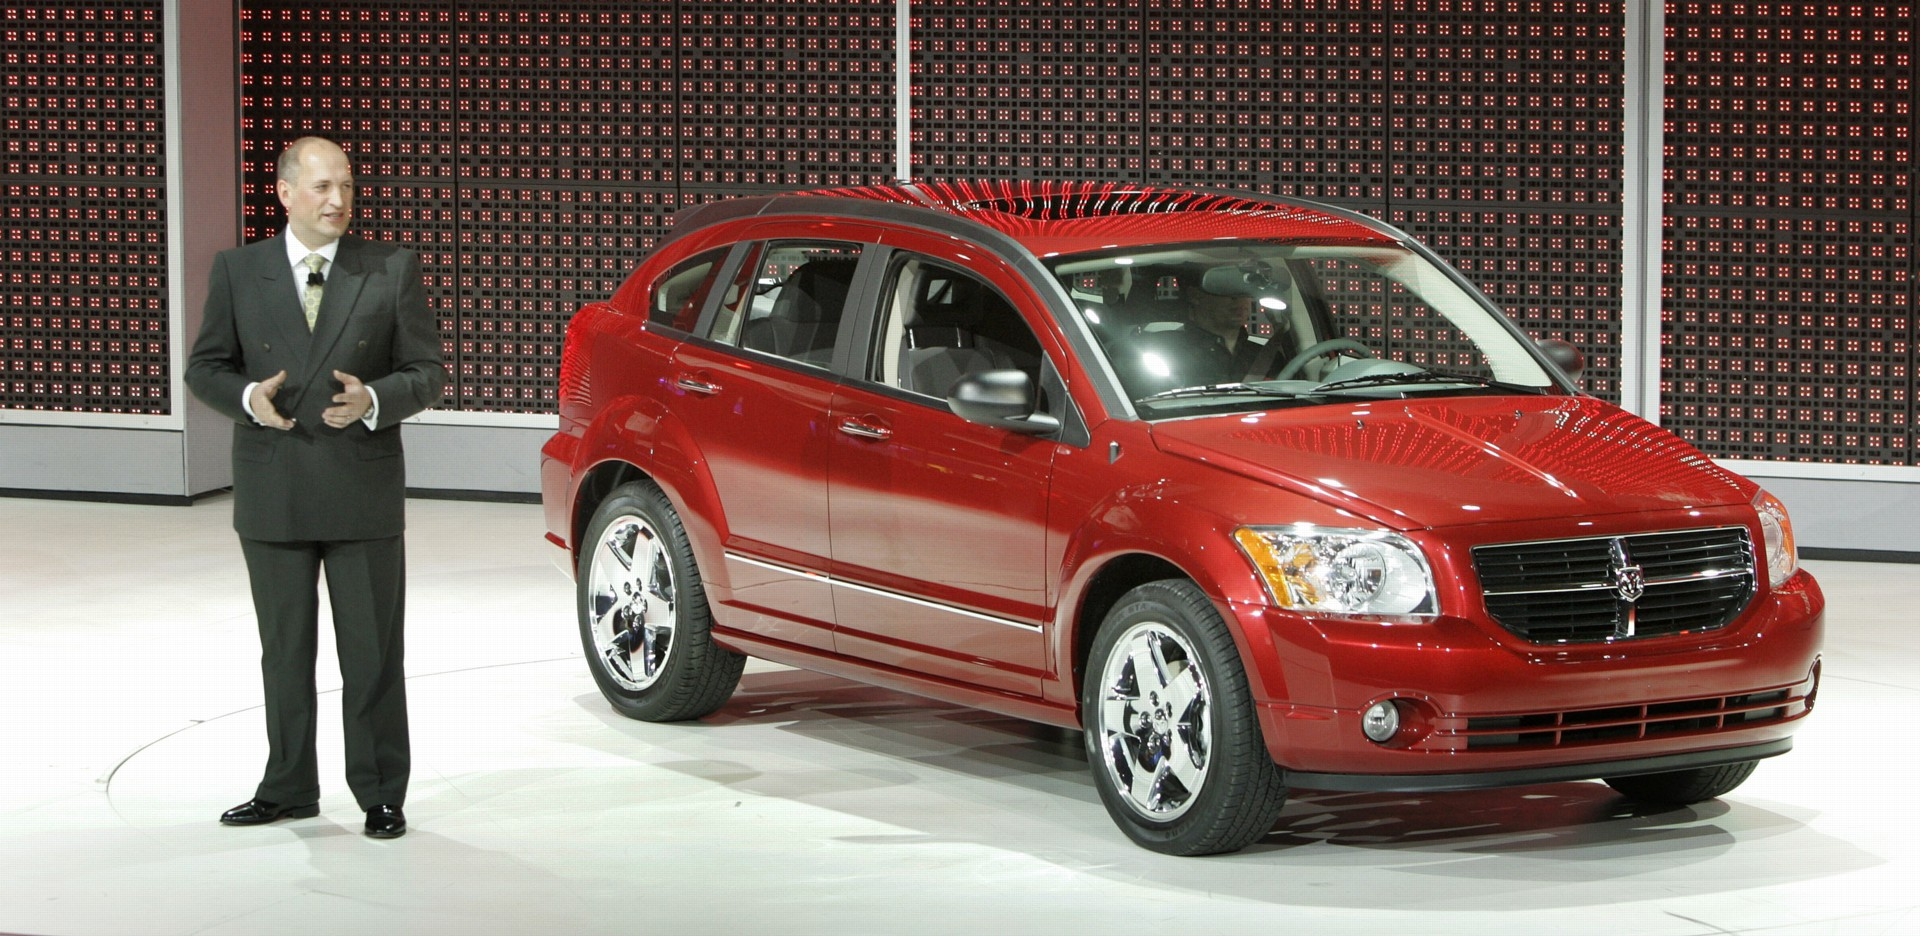 2007 dodge caliber technical and mechanical specifications. Black Bedroom Furniture Sets. Home Design Ideas